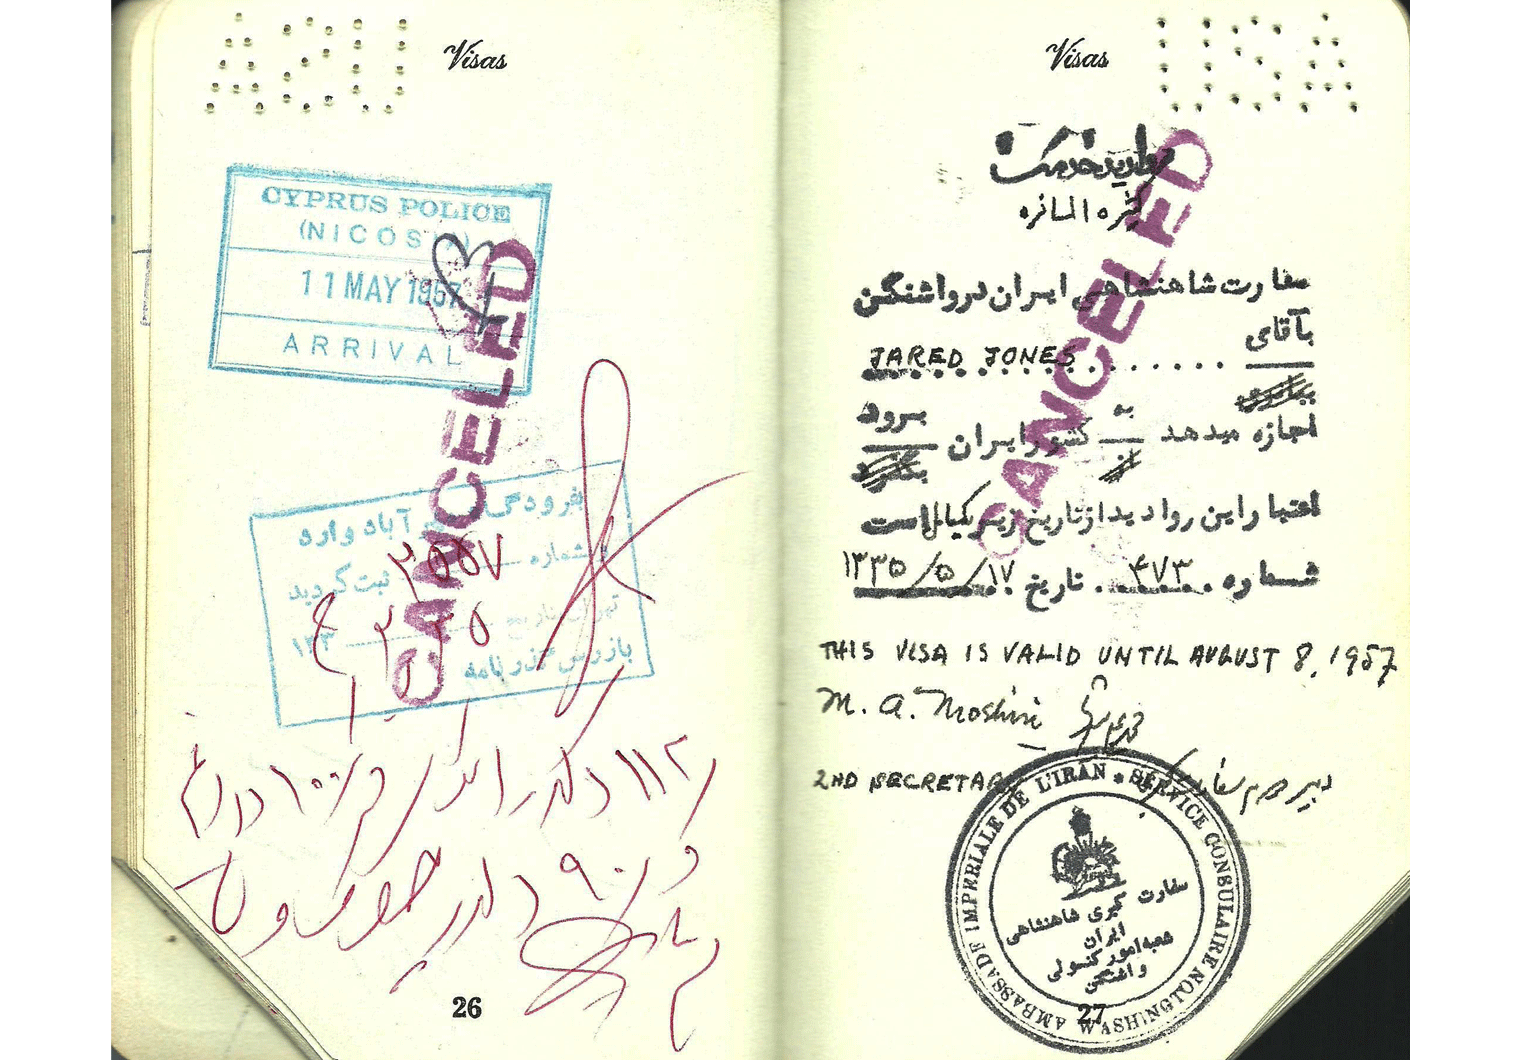 A passport with a visa that you will NOT see today